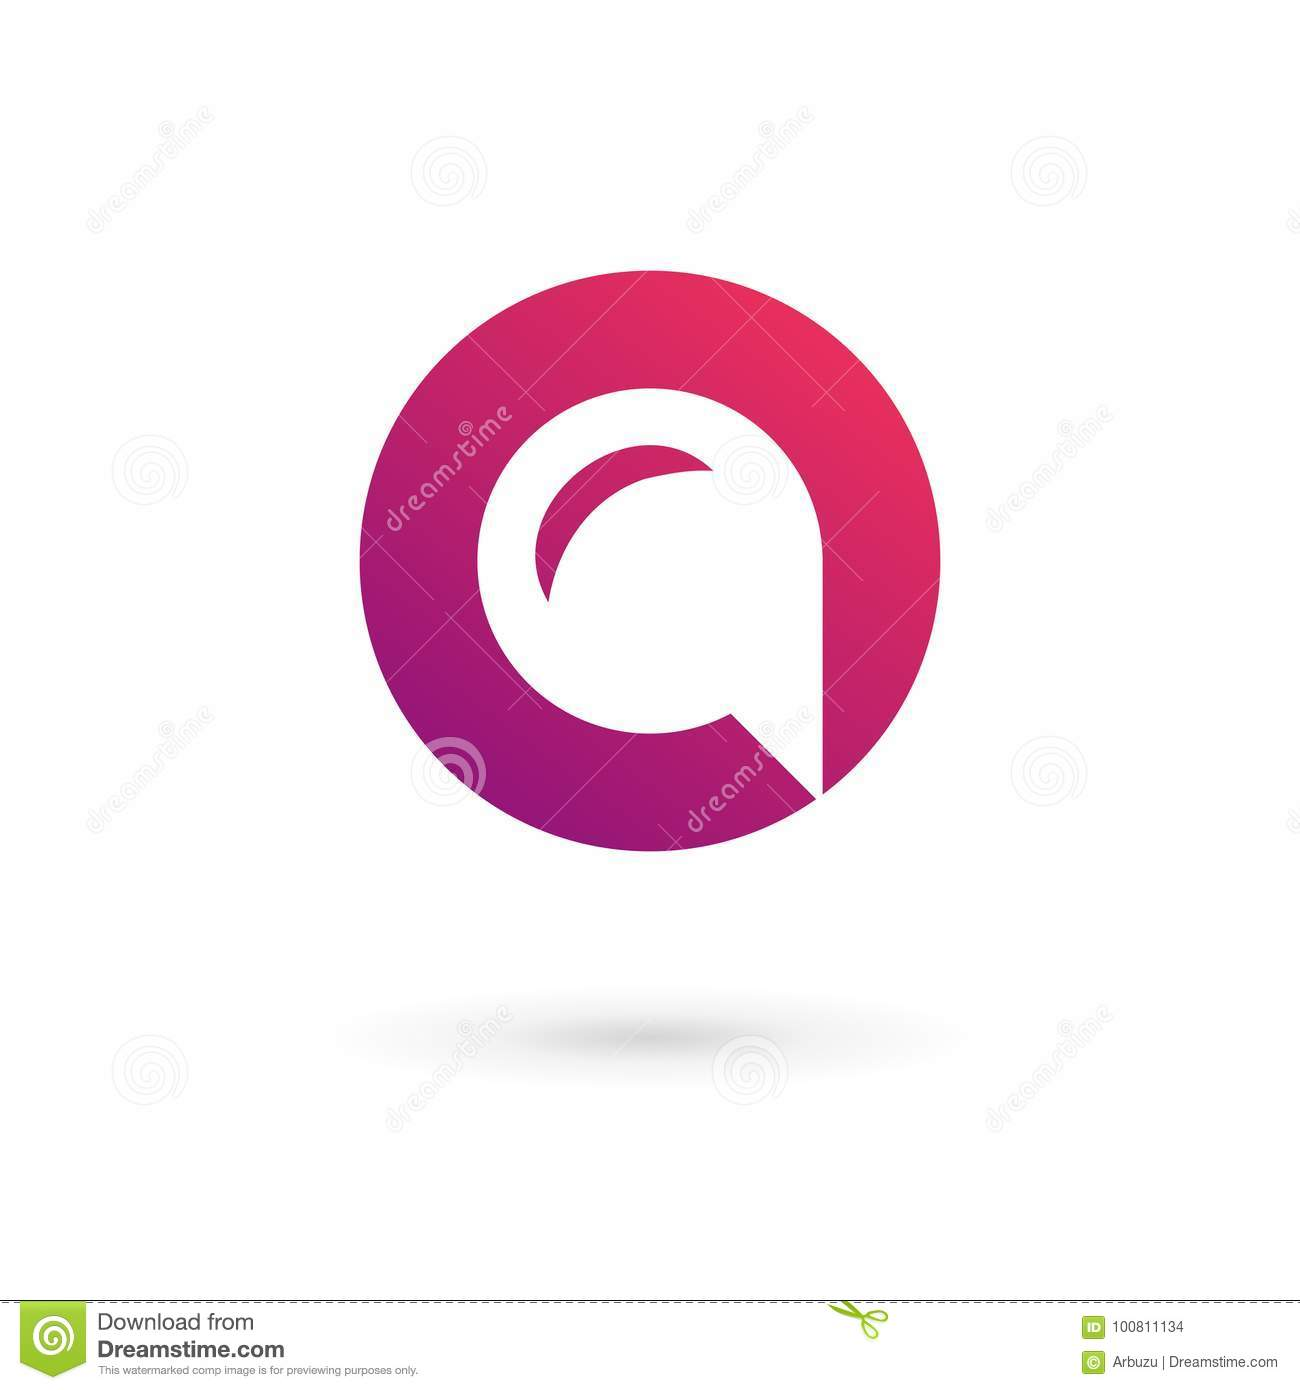 letter o number 0 speech bubble logo icon design template elements